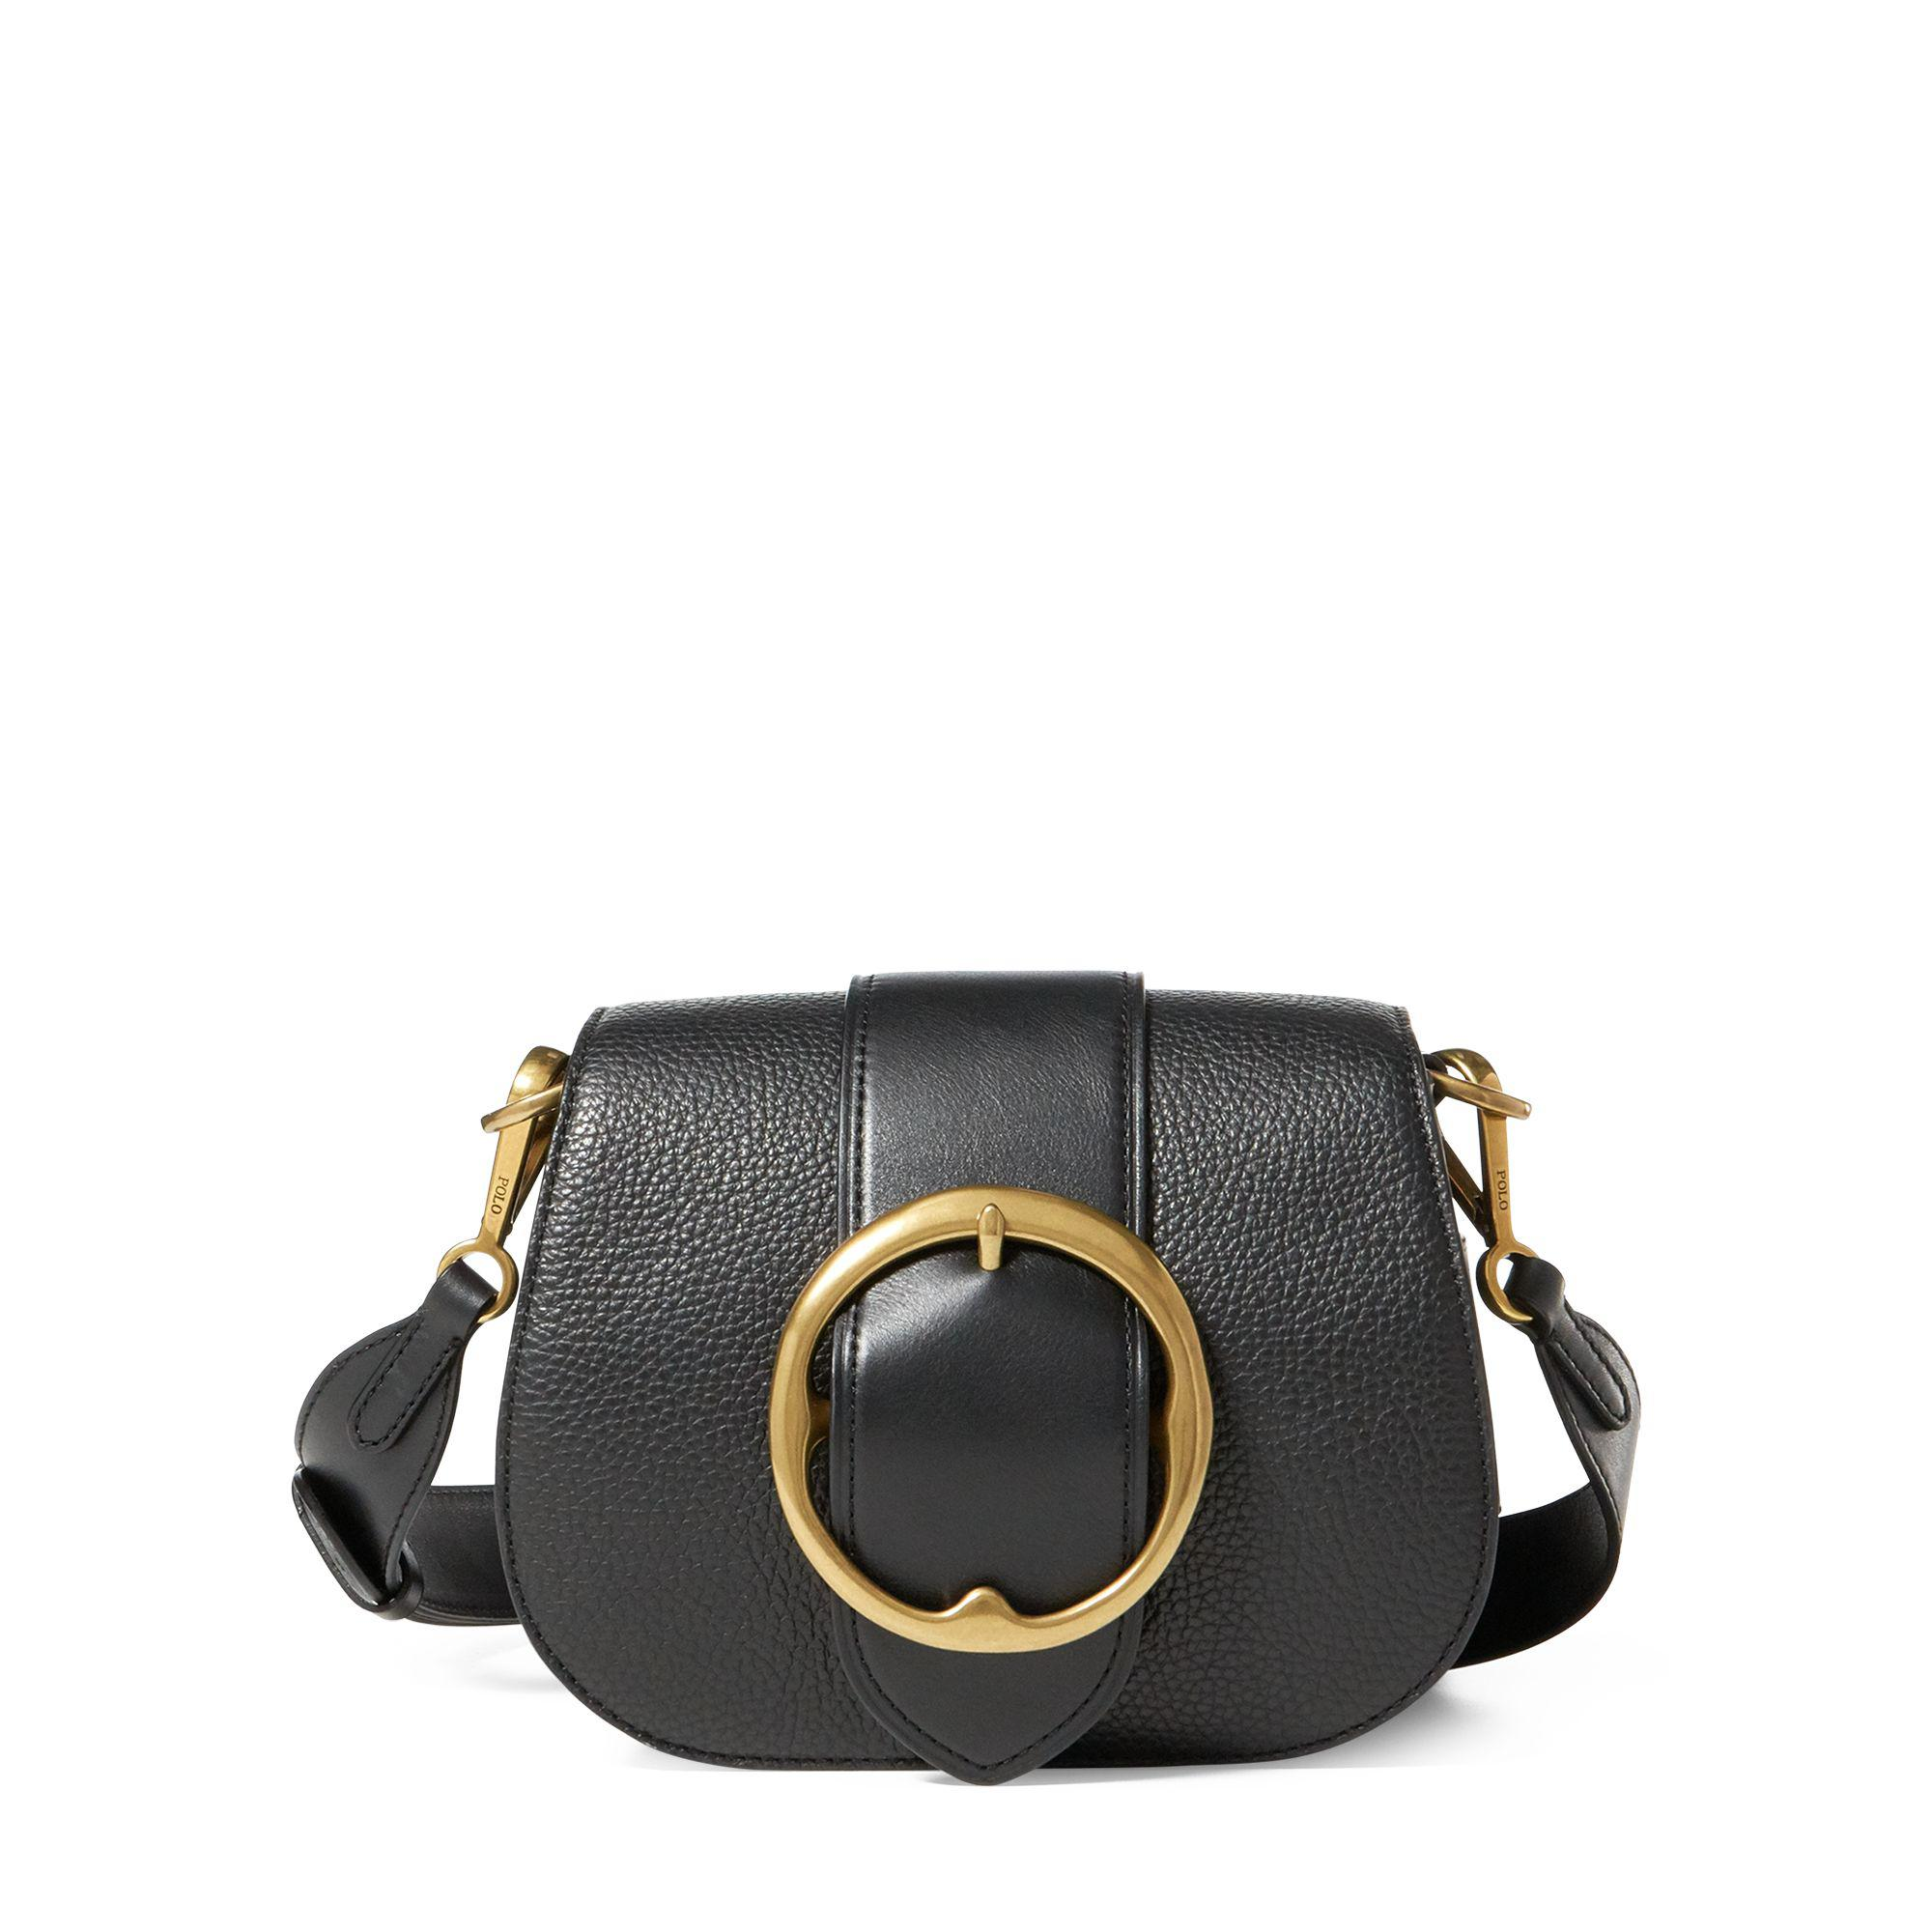 Lyst - Polo Ralph Lauren Pebbled Leather Lennox Bag in Black - Save 33% f9fe7d9f1b